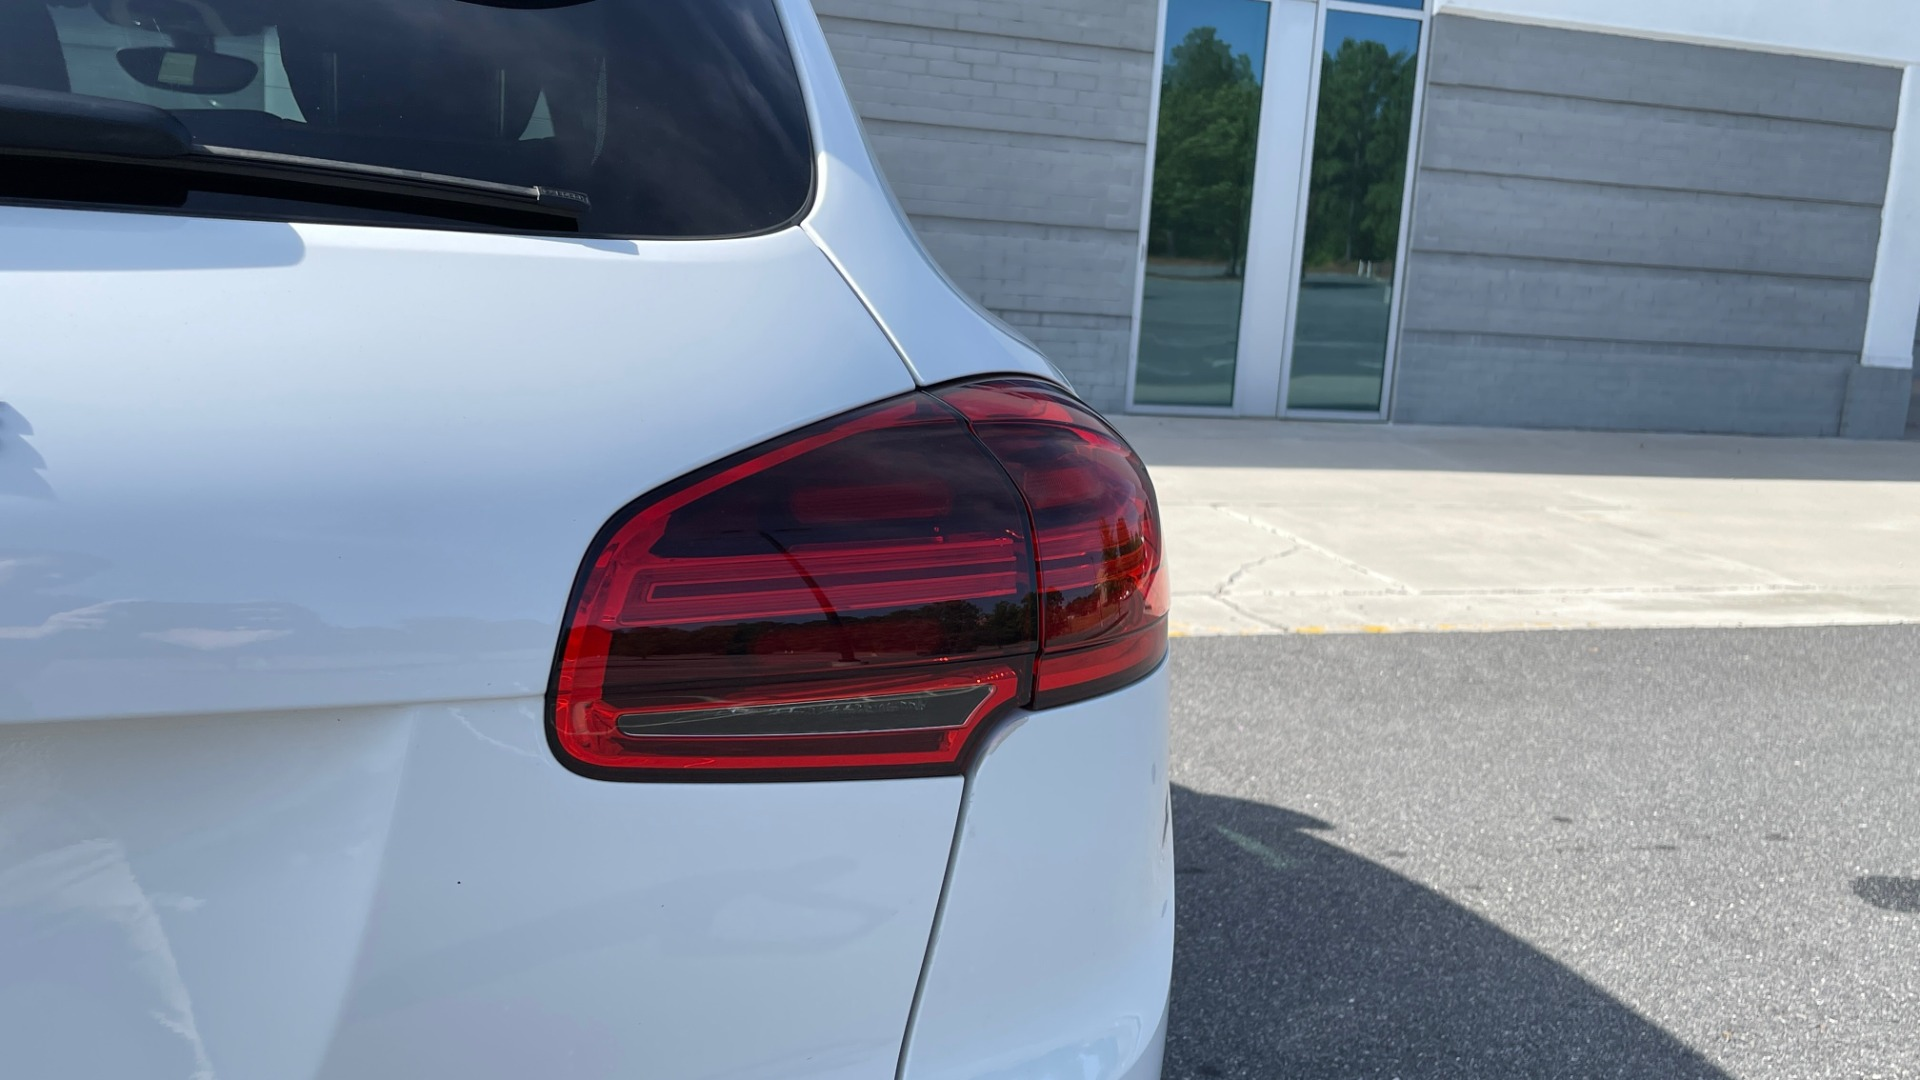 Used 2016 Porsche CAYENNE AWD / 3.6L TURBO / PREMIUM / BOSE / PANO-ROOF / NAV / LCA for sale $32,995 at Formula Imports in Charlotte NC 28227 24